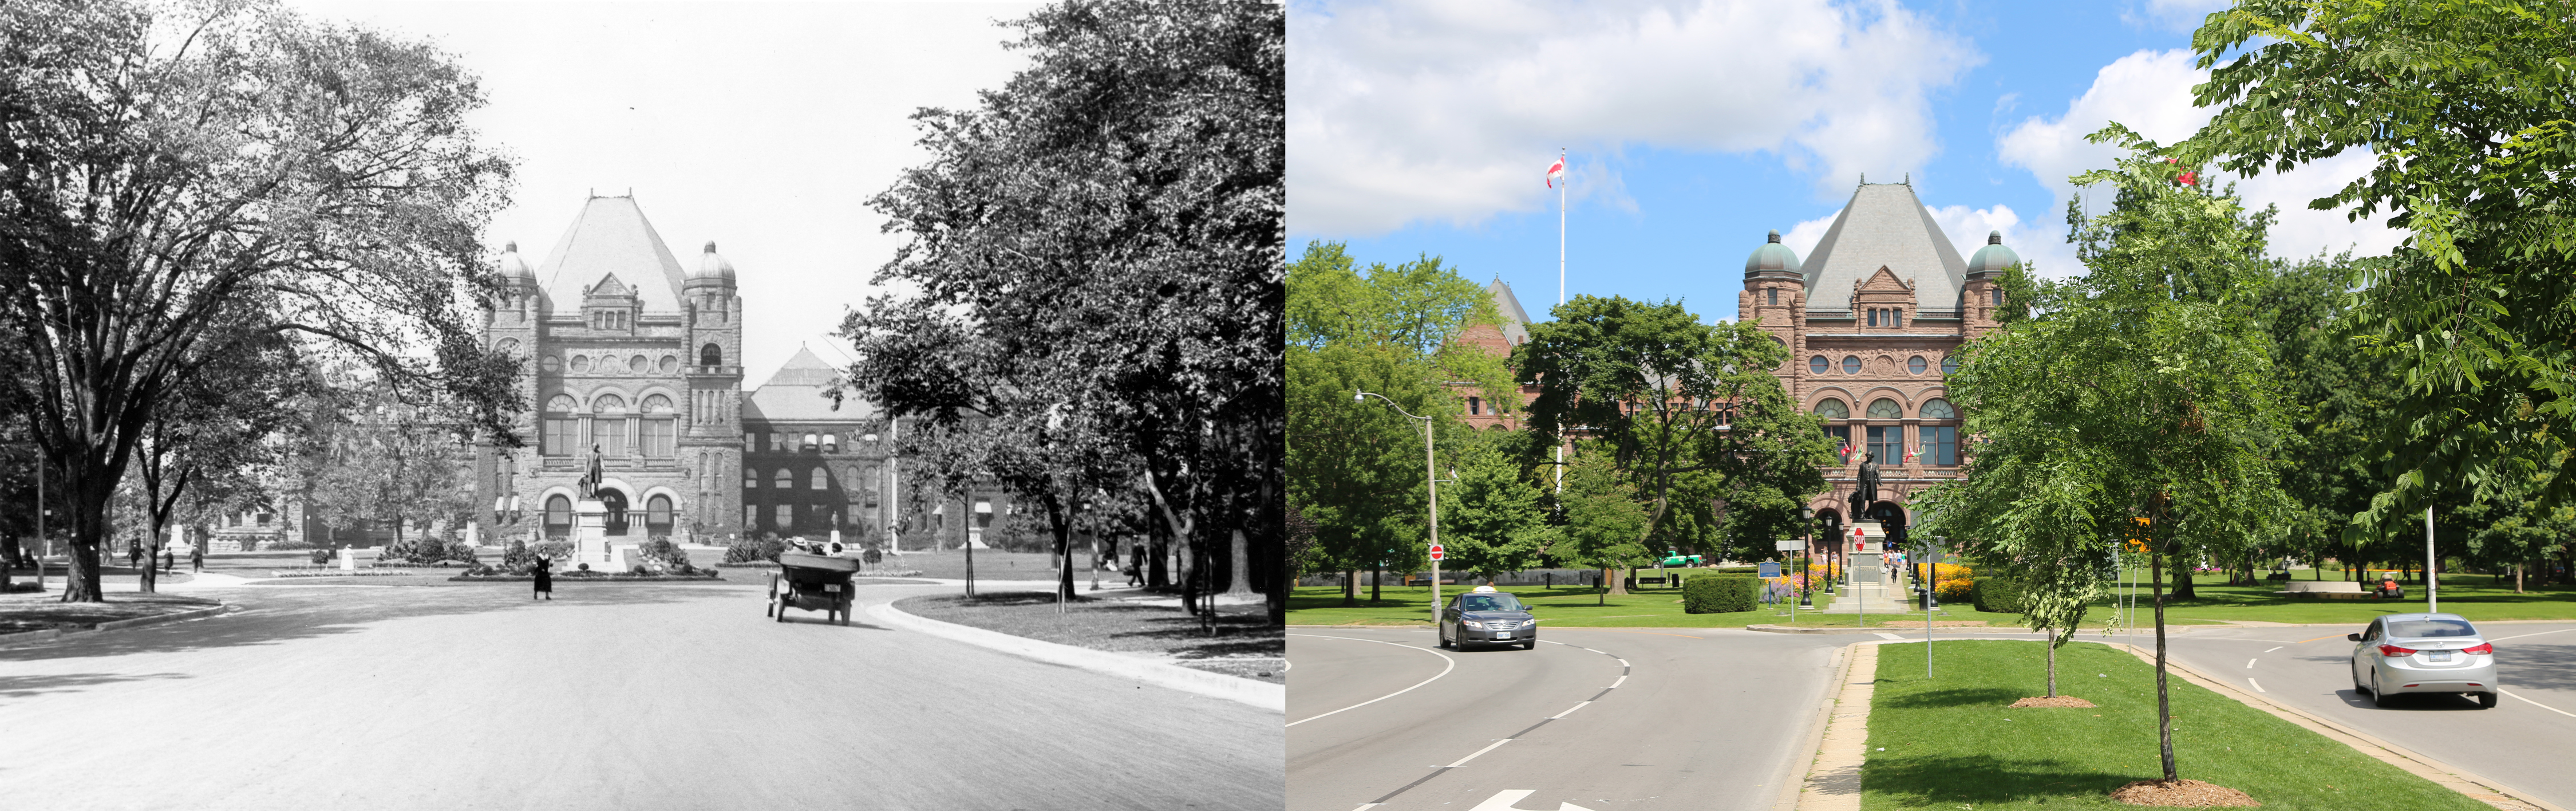 Looking north from University Avenue at the Legislative Building - the view on the left is from 1914, the view on the right is from present day